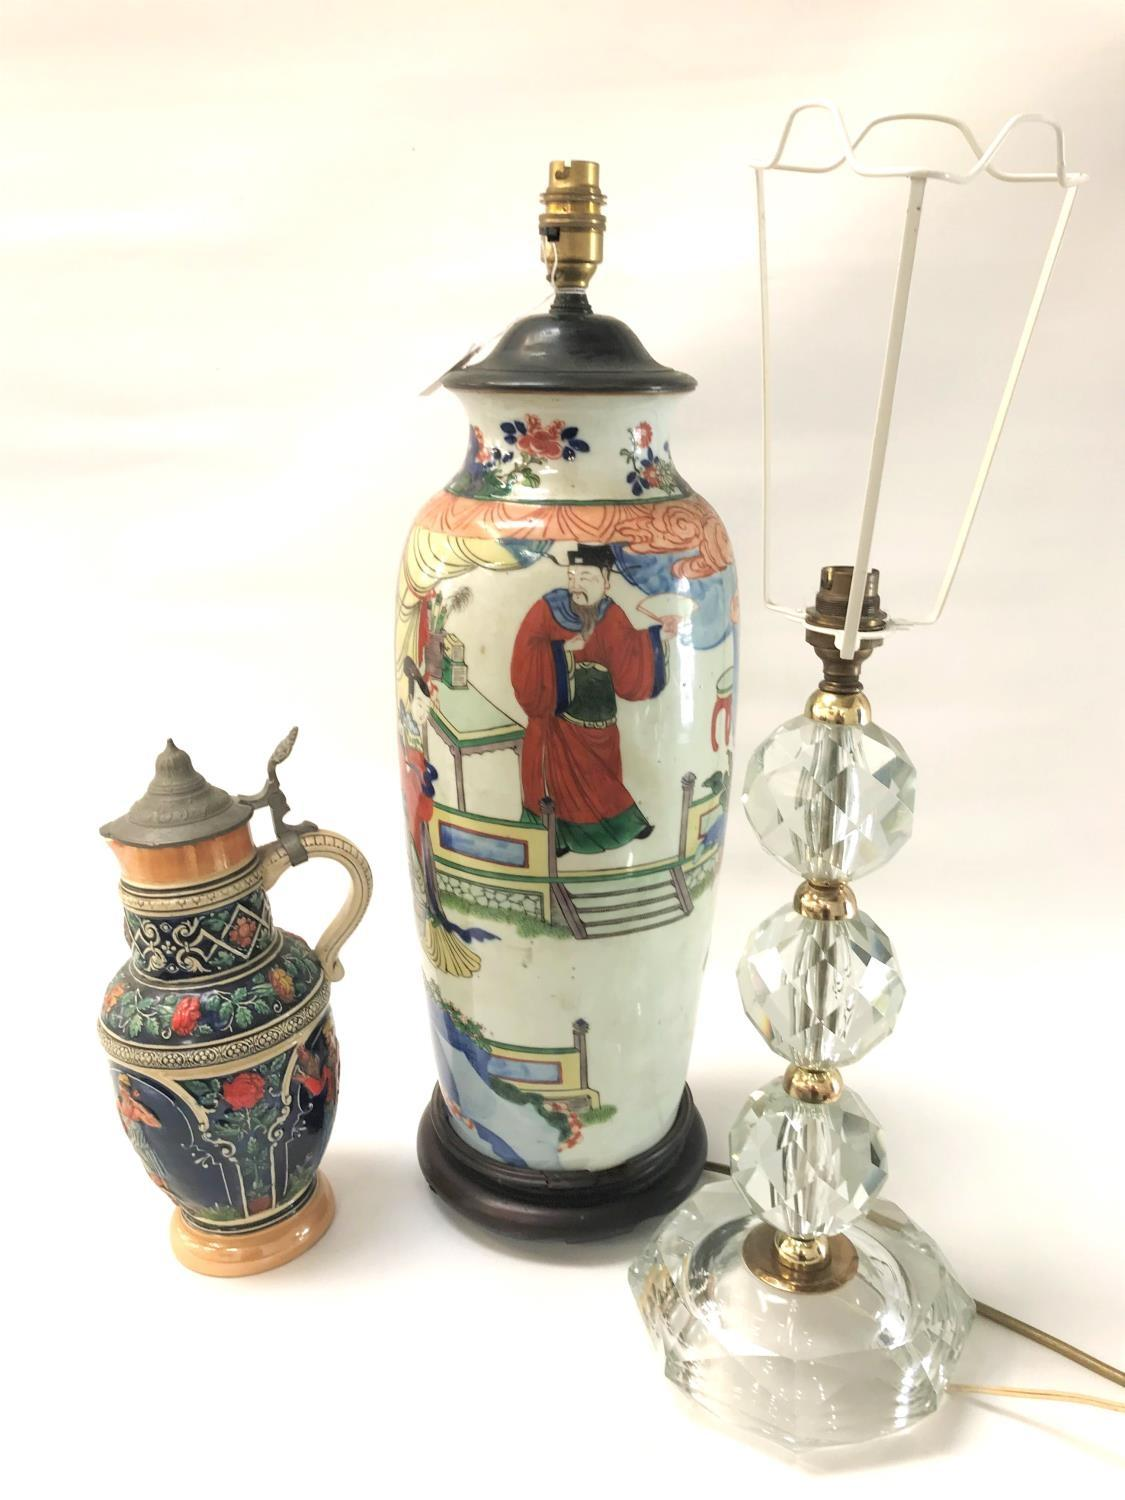 Lot 244 - CHINESE TABLE LAMP decorated with figures, 56cm high; a cut glass table lamp with a shaped base